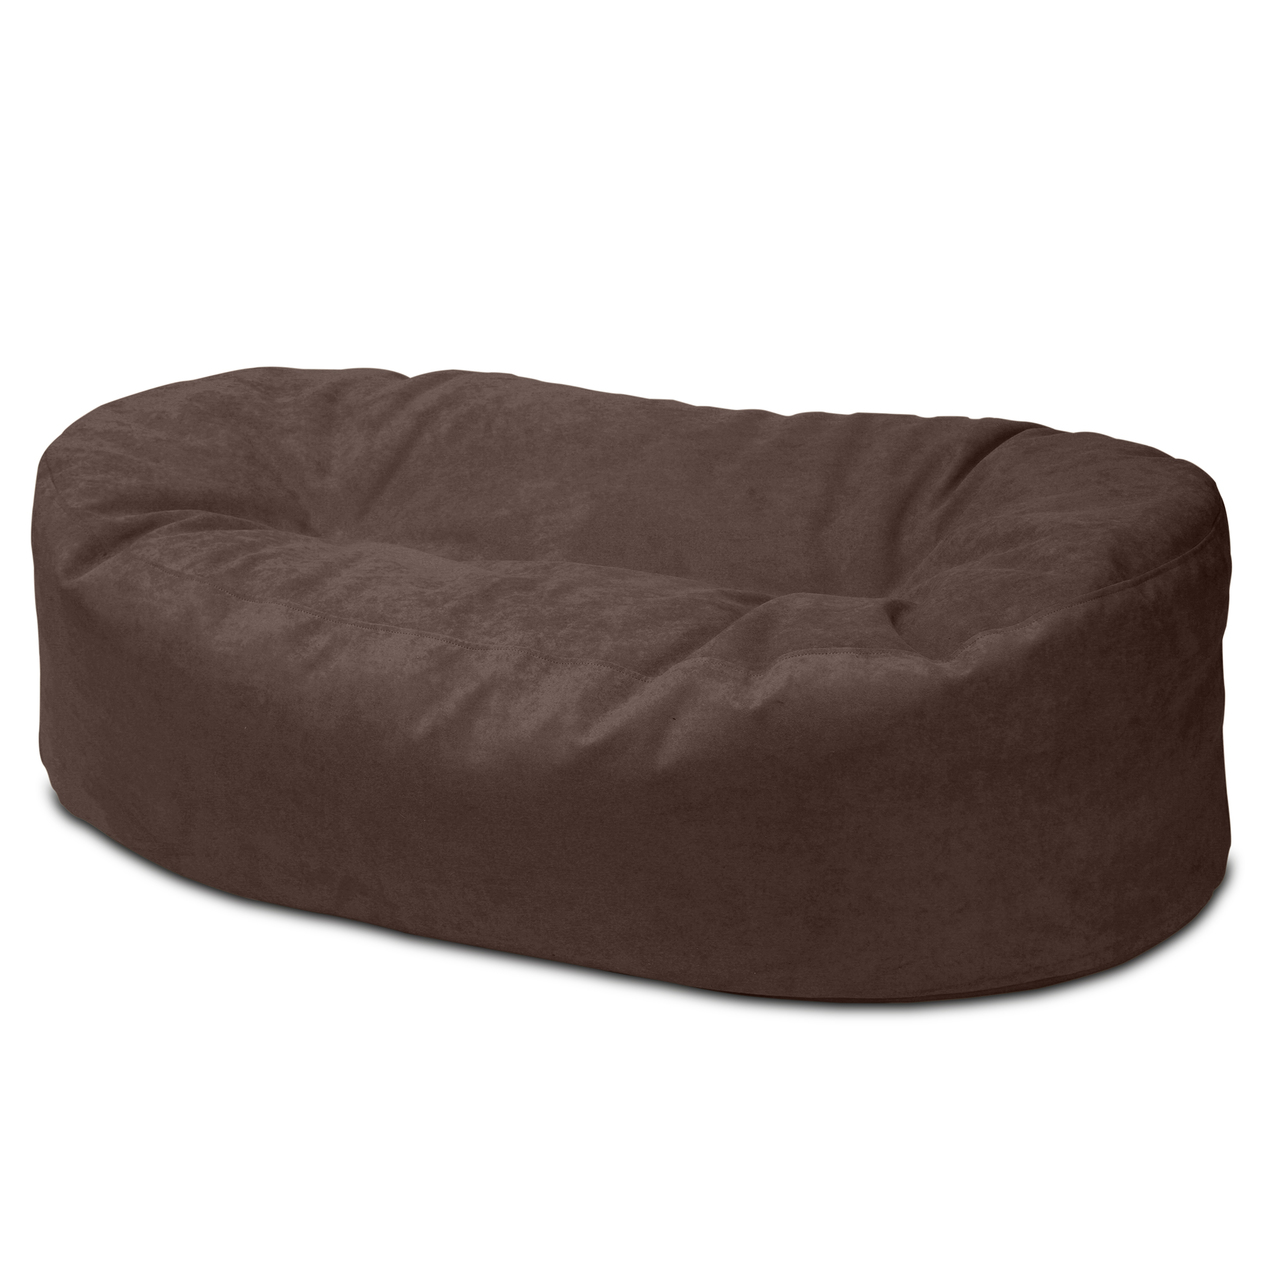 Warwick Macrosuede 2m Couch in raisin